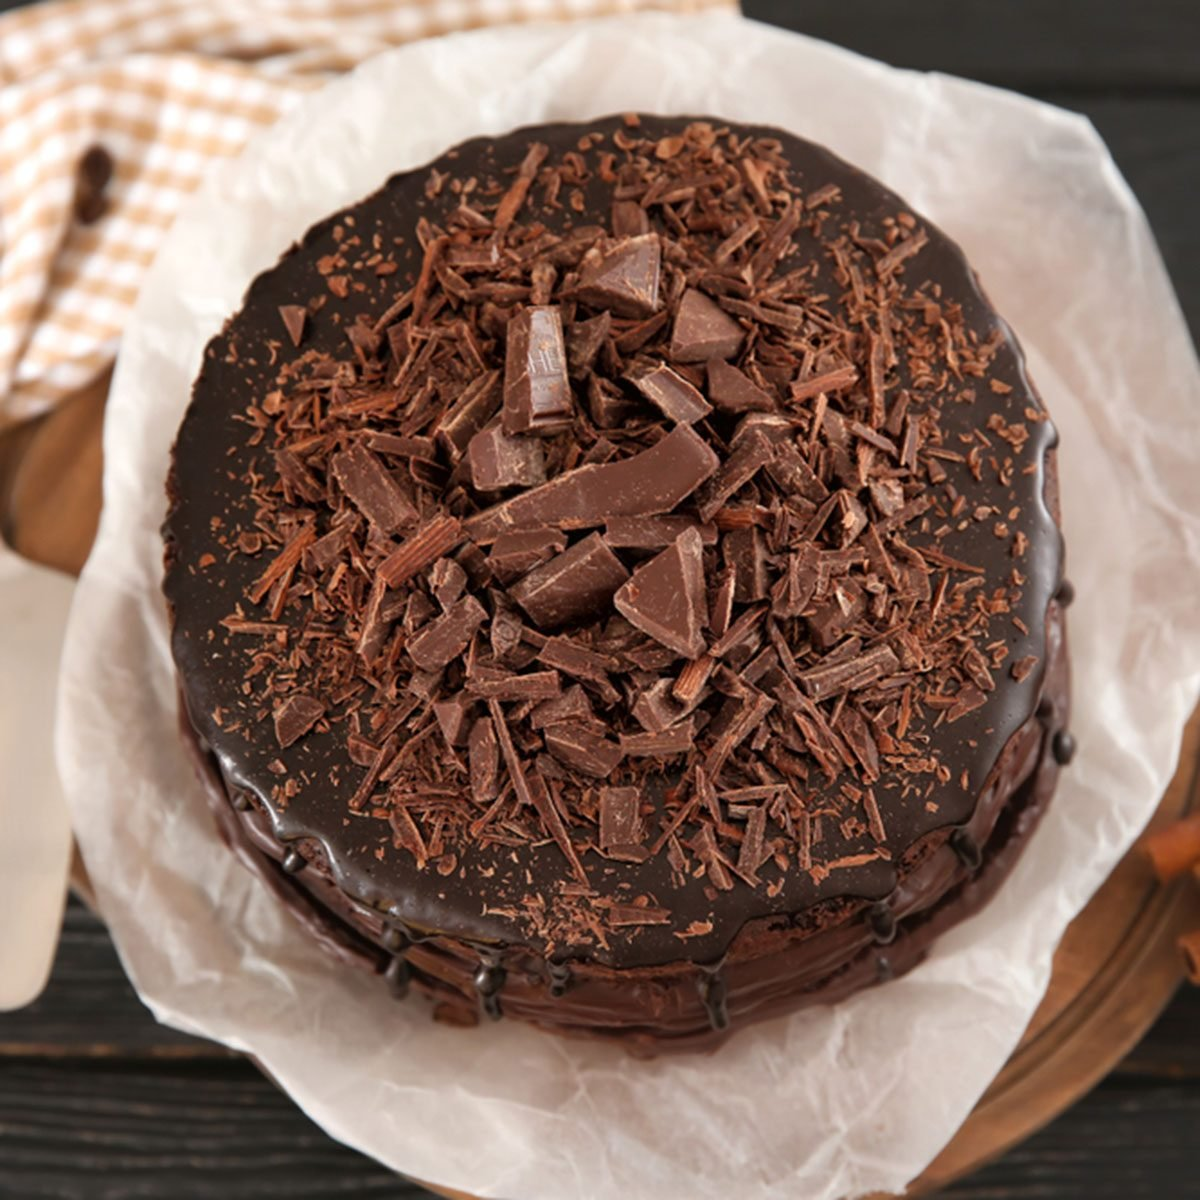 Board with delicious chocolate cake on wooden table; Shutterstock ID 1156703284; Job (TFH, TOH, RD, BNB, CWM, CM): Taste of Home